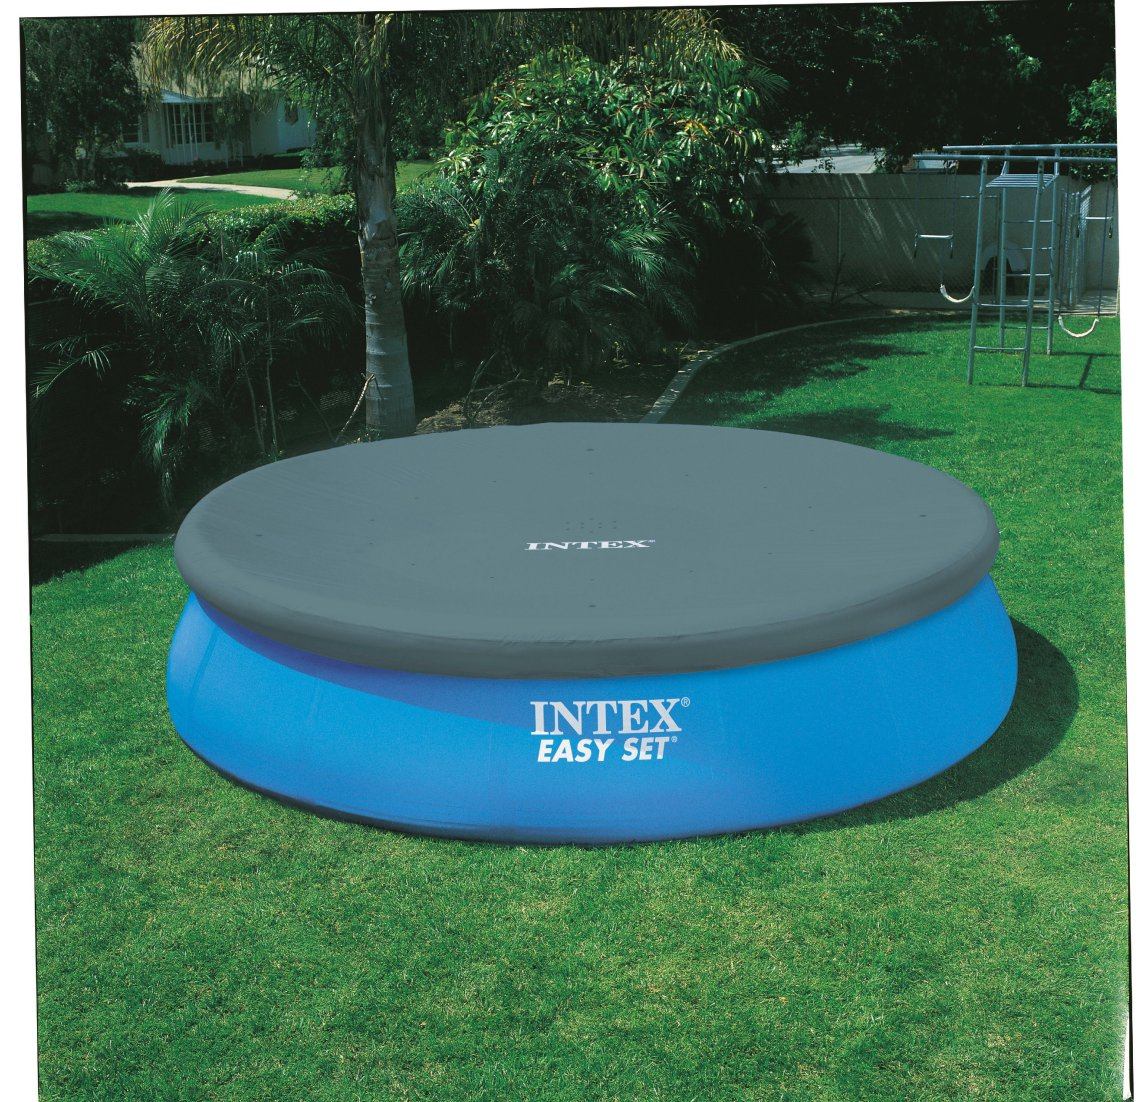 Intex Piscinas Acessorios Piscina Gonfiabile Intex 28168 26168 Easy Rotonda 43 Pompa